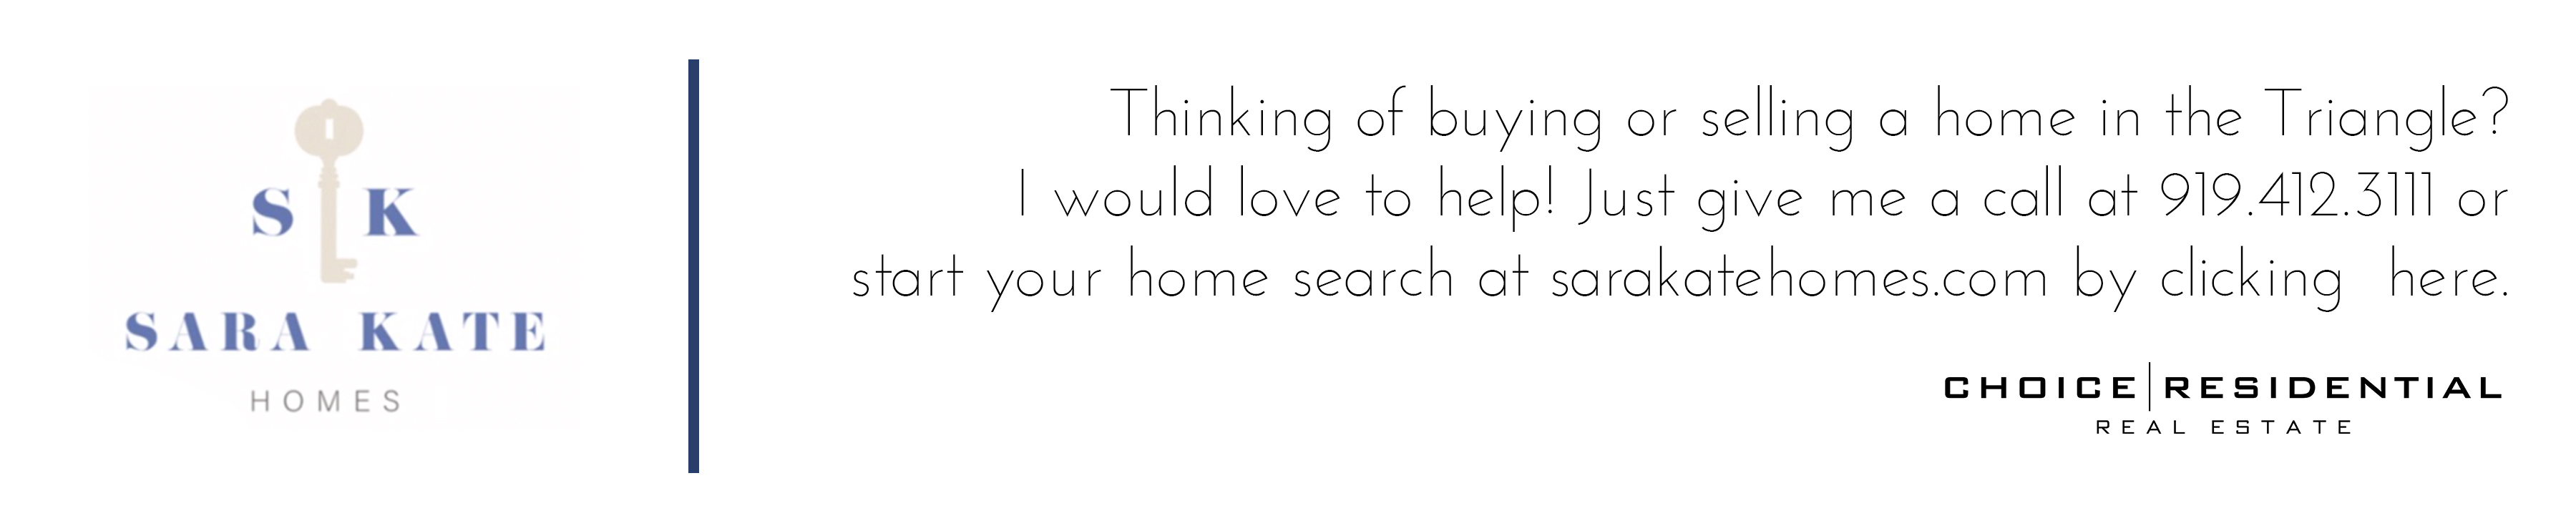 Thinking of buying or selling in the triangle